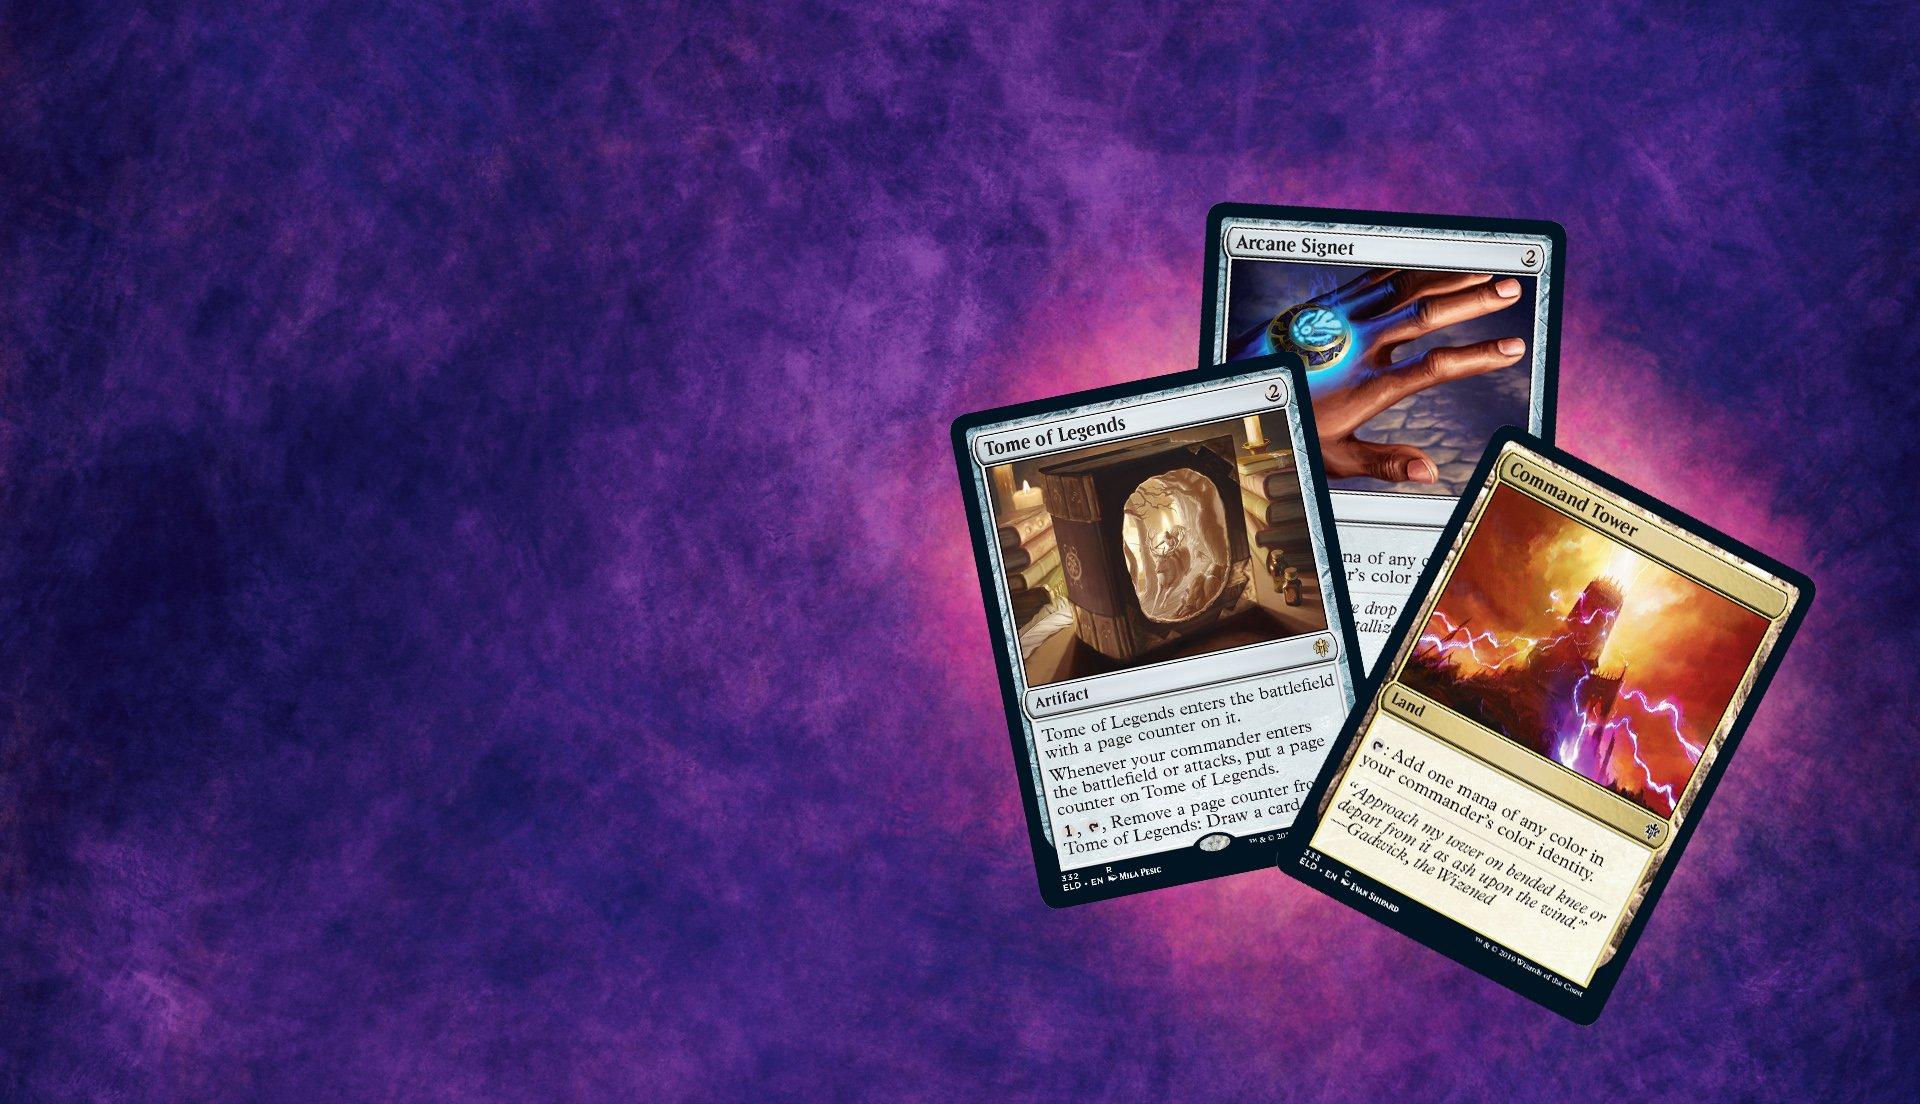 Wizards is running a Magic: Arena event to promote the new Brawl format screenshot